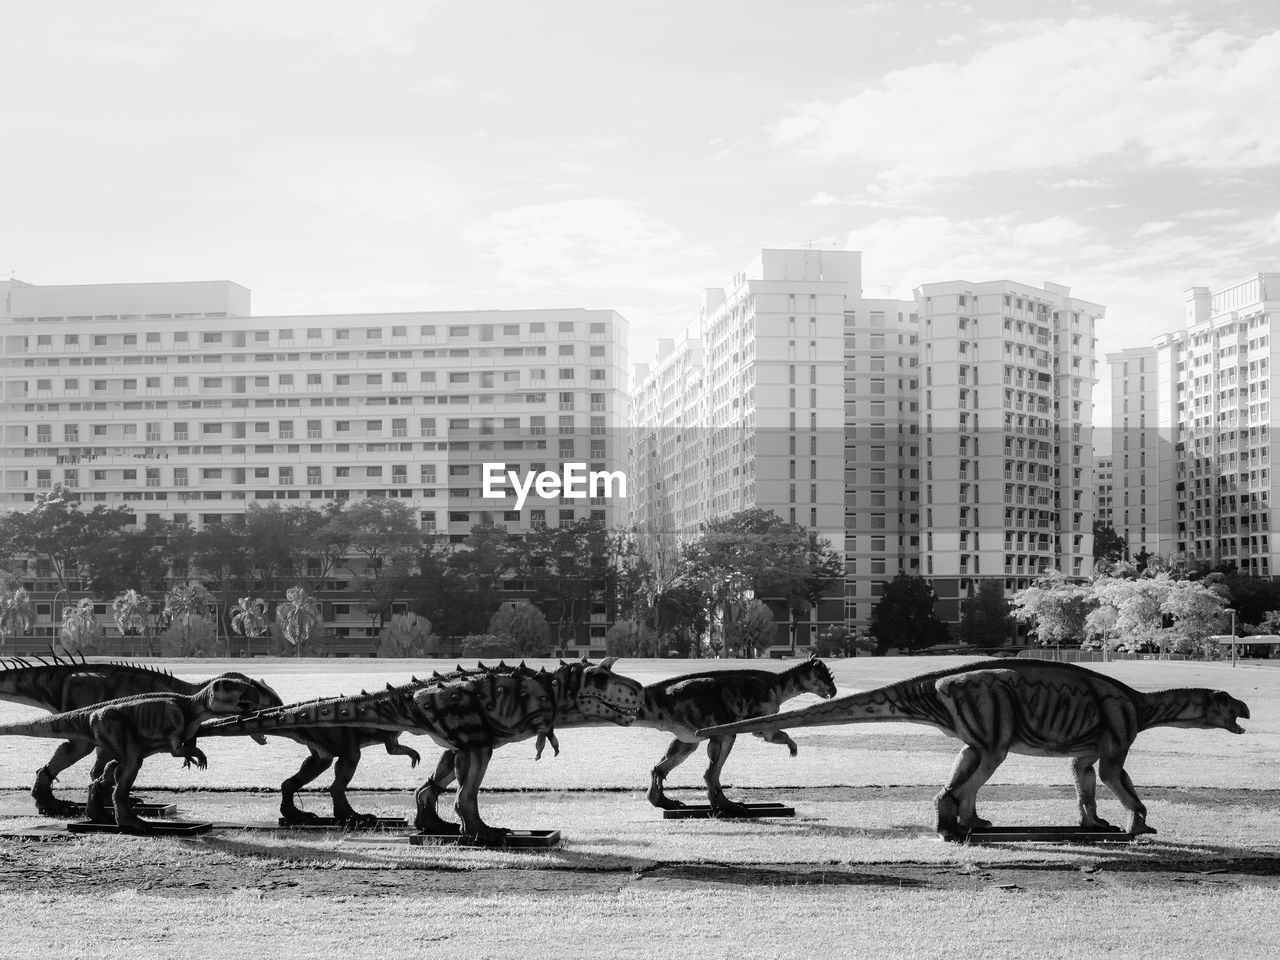 building exterior, city, architecture, built structure, mammal, animal, animal themes, animal wildlife, building, group of animals, sky, day, domestic animals, nature, domestic, vertebrate, group of people, outdoors, pets, livestock, office building exterior, skyscraper